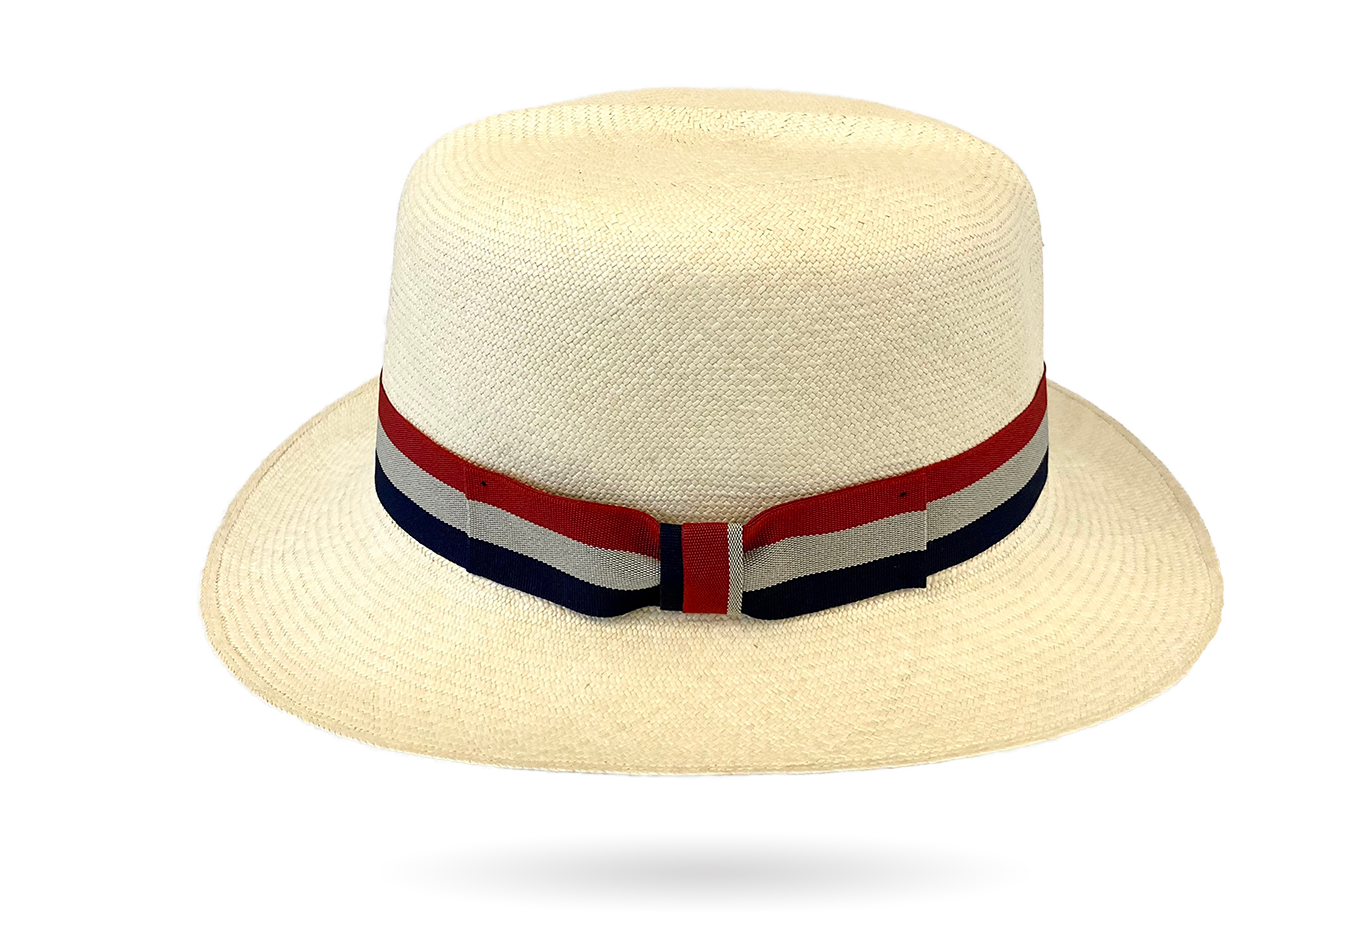 optimo hats texas panama hat